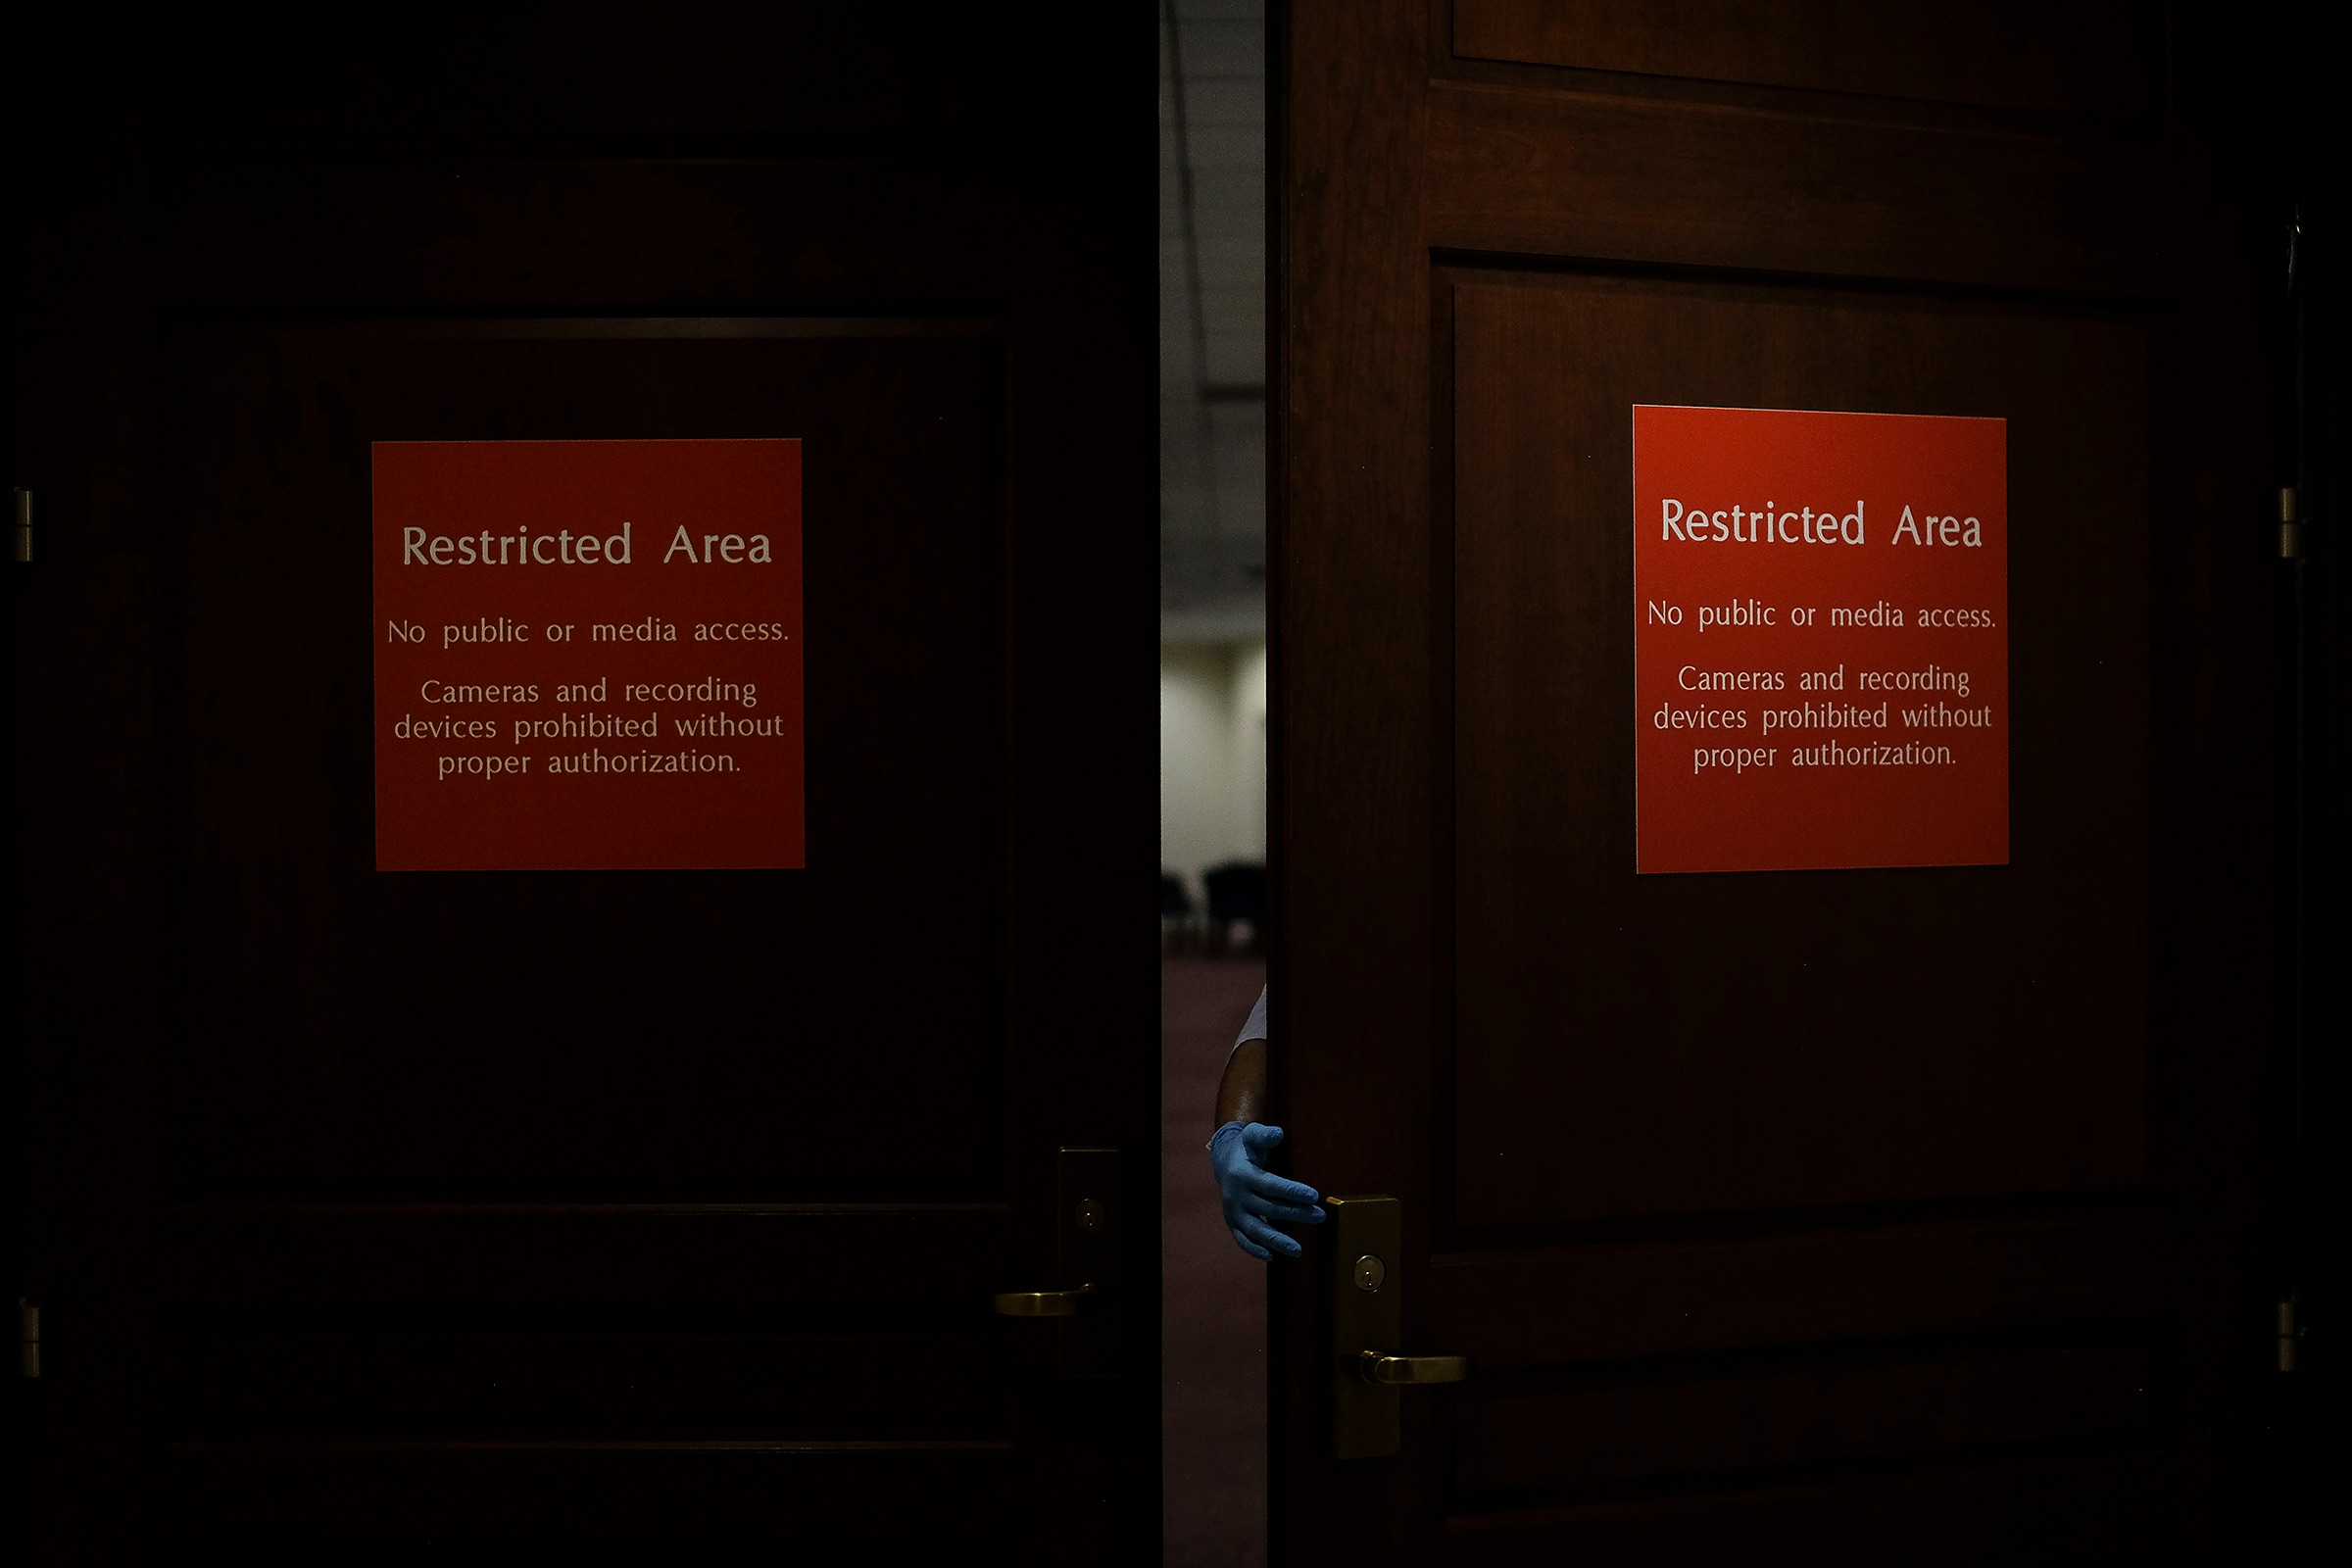 A custodial staff member walks into the sensitive compartmented information facility (SCIF), where Democrats conducted closed-door depositions during the House impeachment inquiry, in the basement of the Capitol in Washington, D.C., on Oct. 1, 2019.